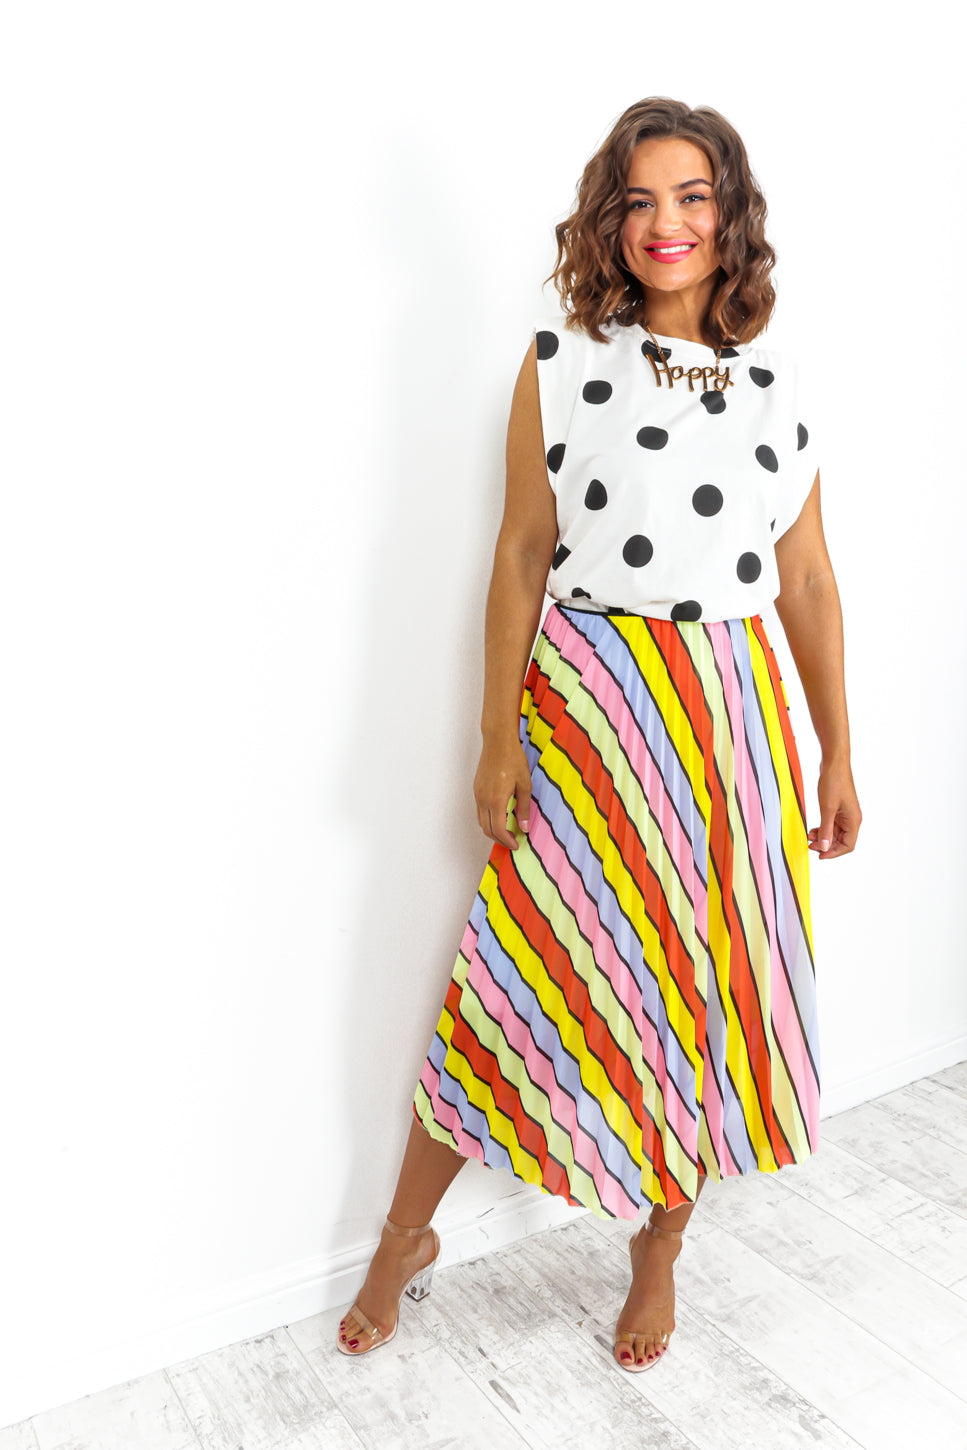 We'll Pleat Again - Skirt In MULTI/STRIPE